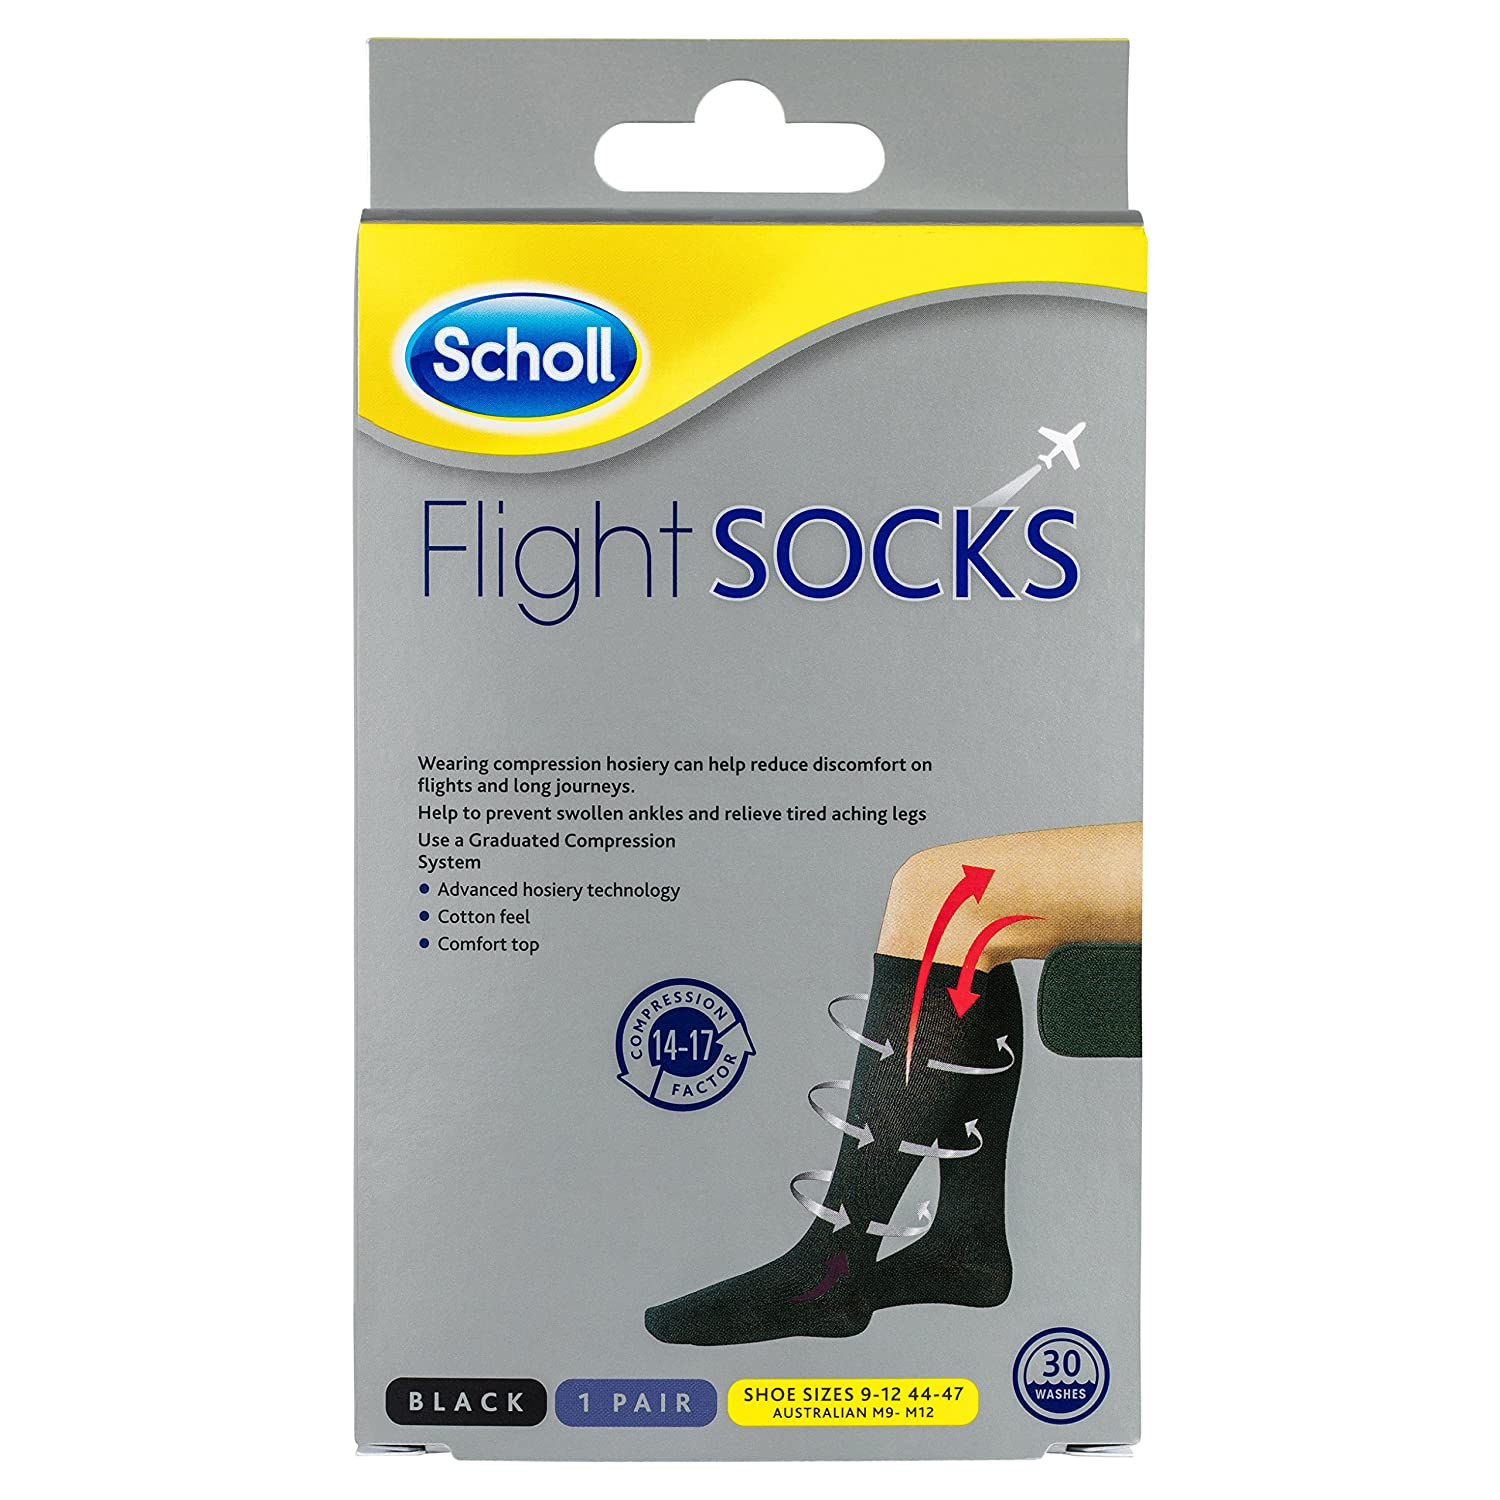 Scholl Flight Socks Compression Hosiery, Black (W8-11, M6-9